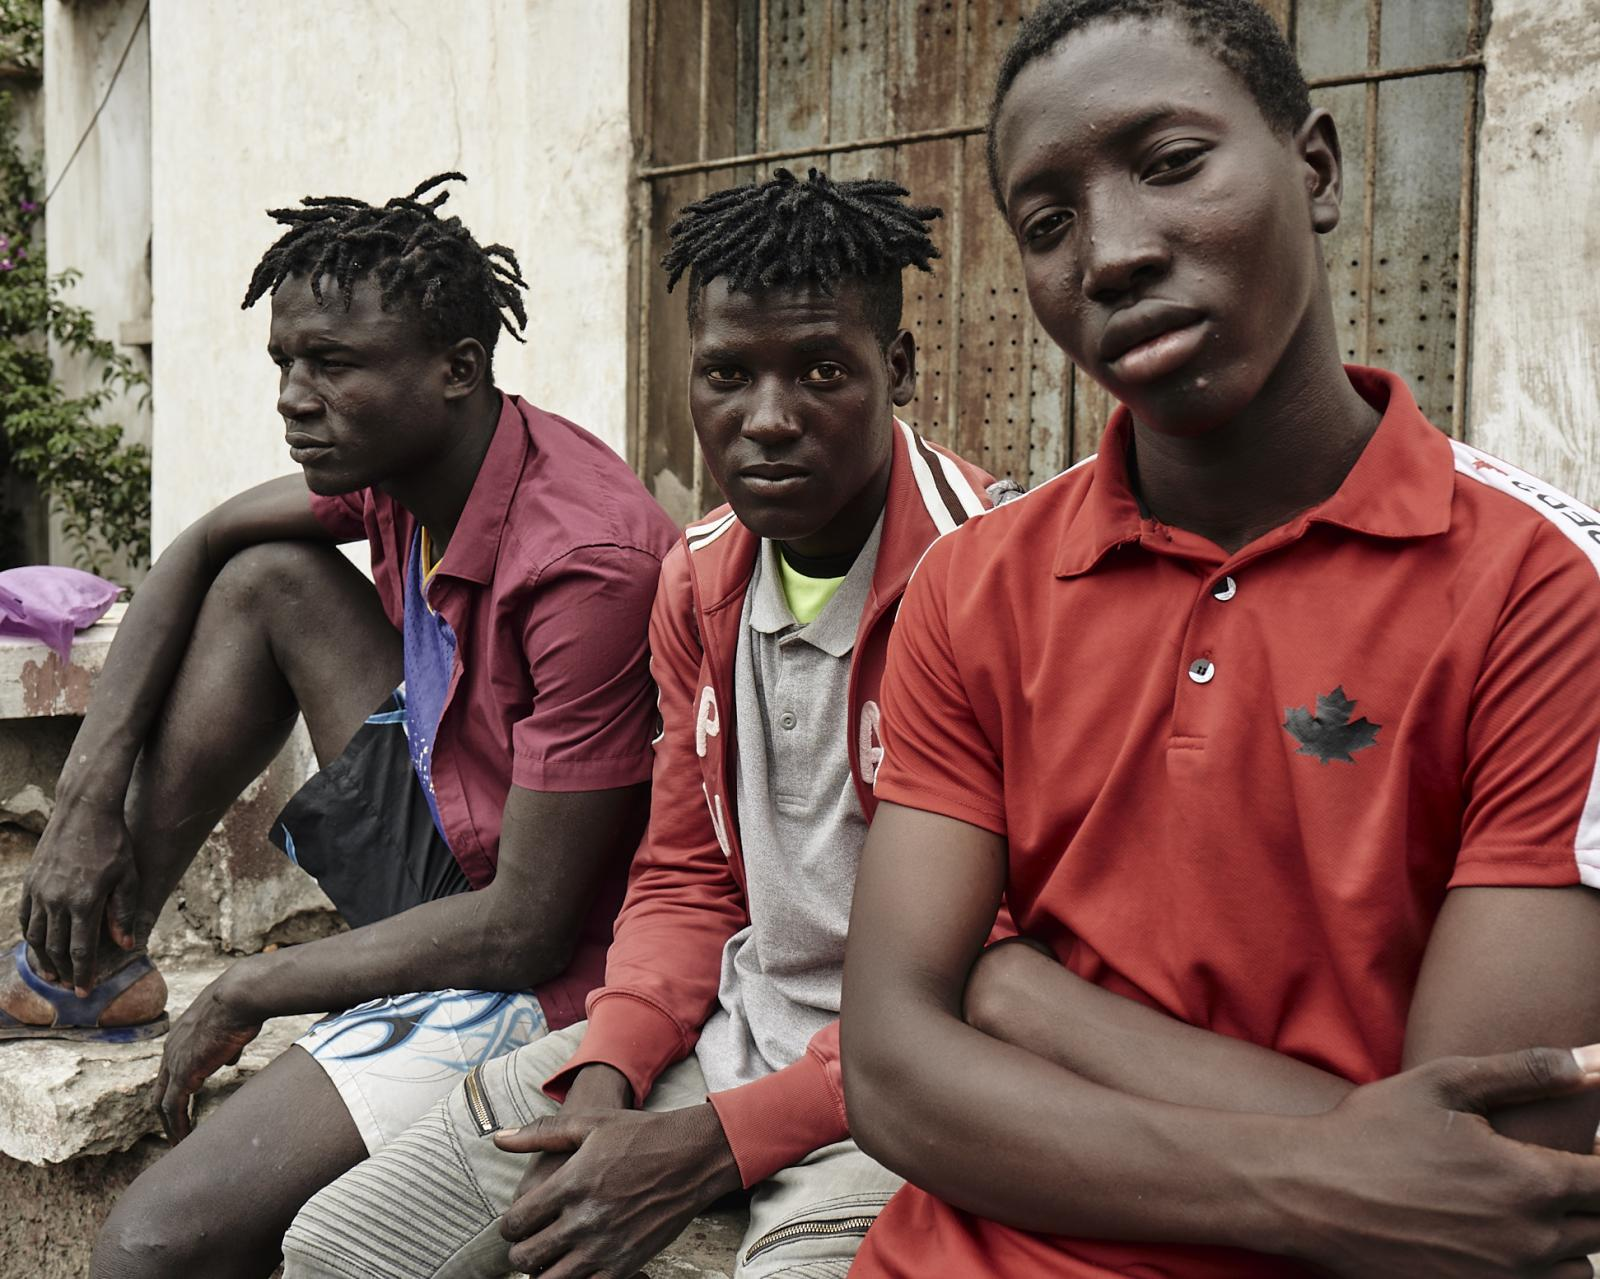 A group of teenagers poses for a portrait.